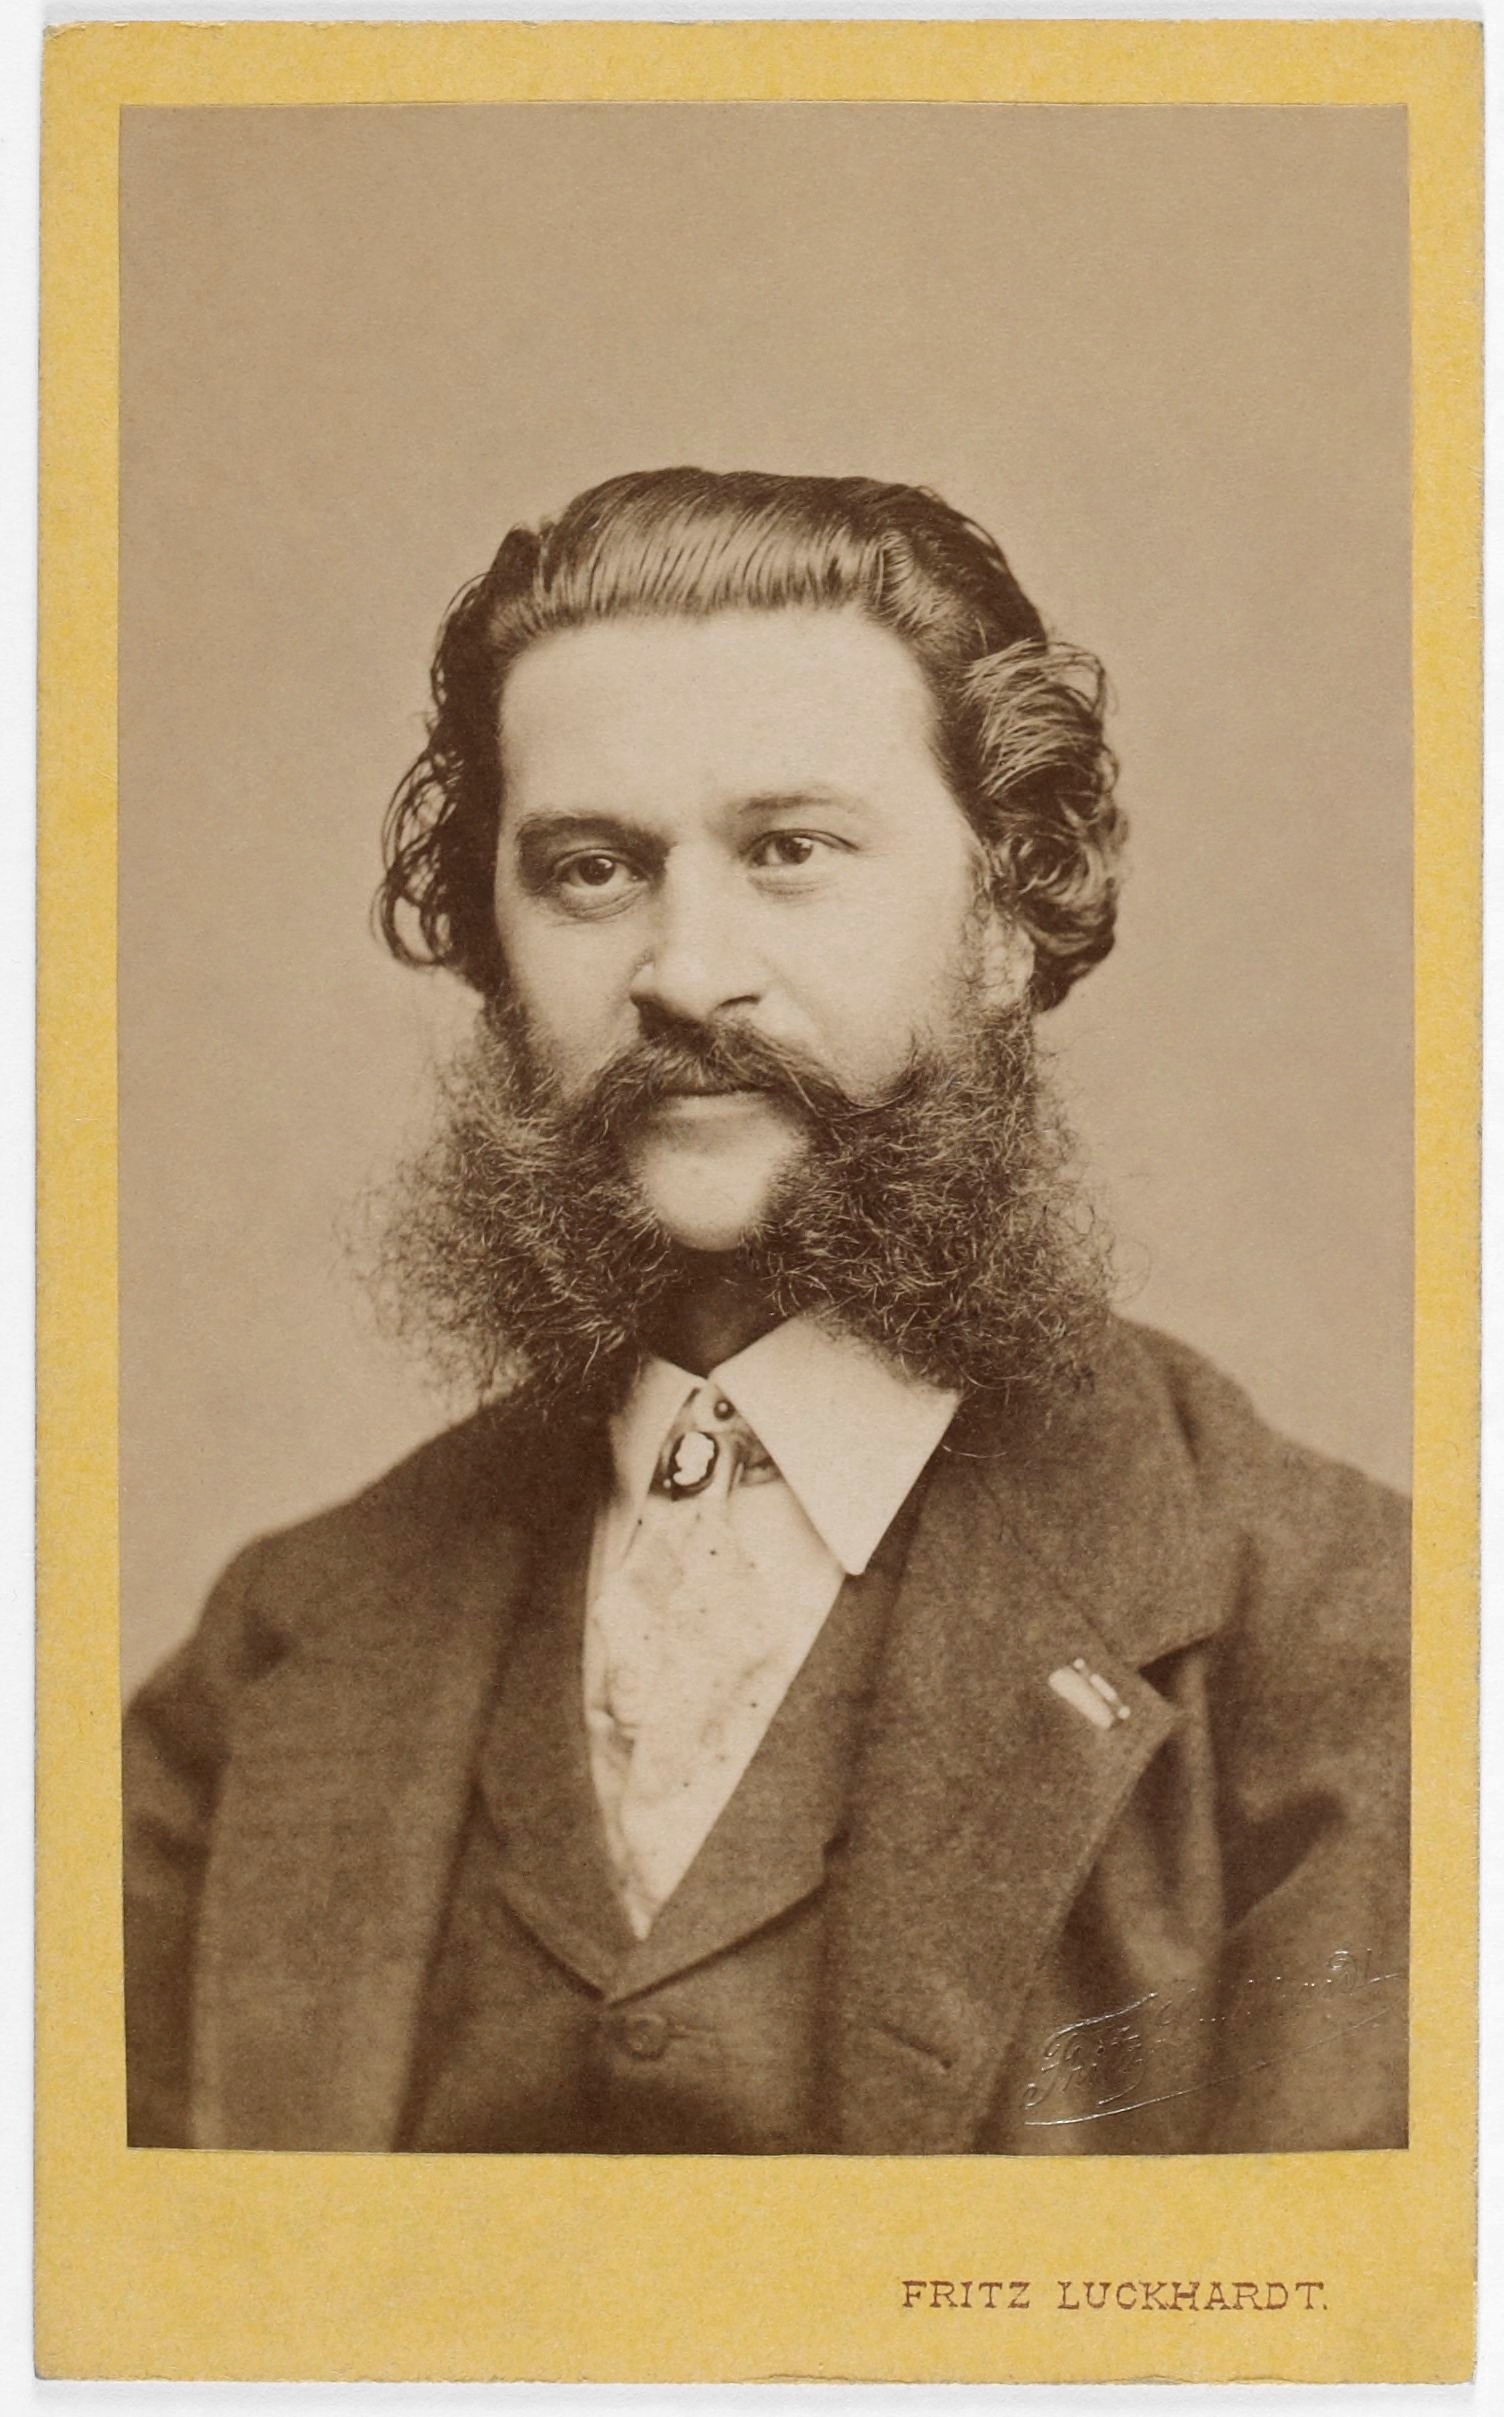 https://upload.wikimedia.org/wikipedia/commons/6/67/Johann_Strauss_II_by_Fritz_Luckhardt.jpg